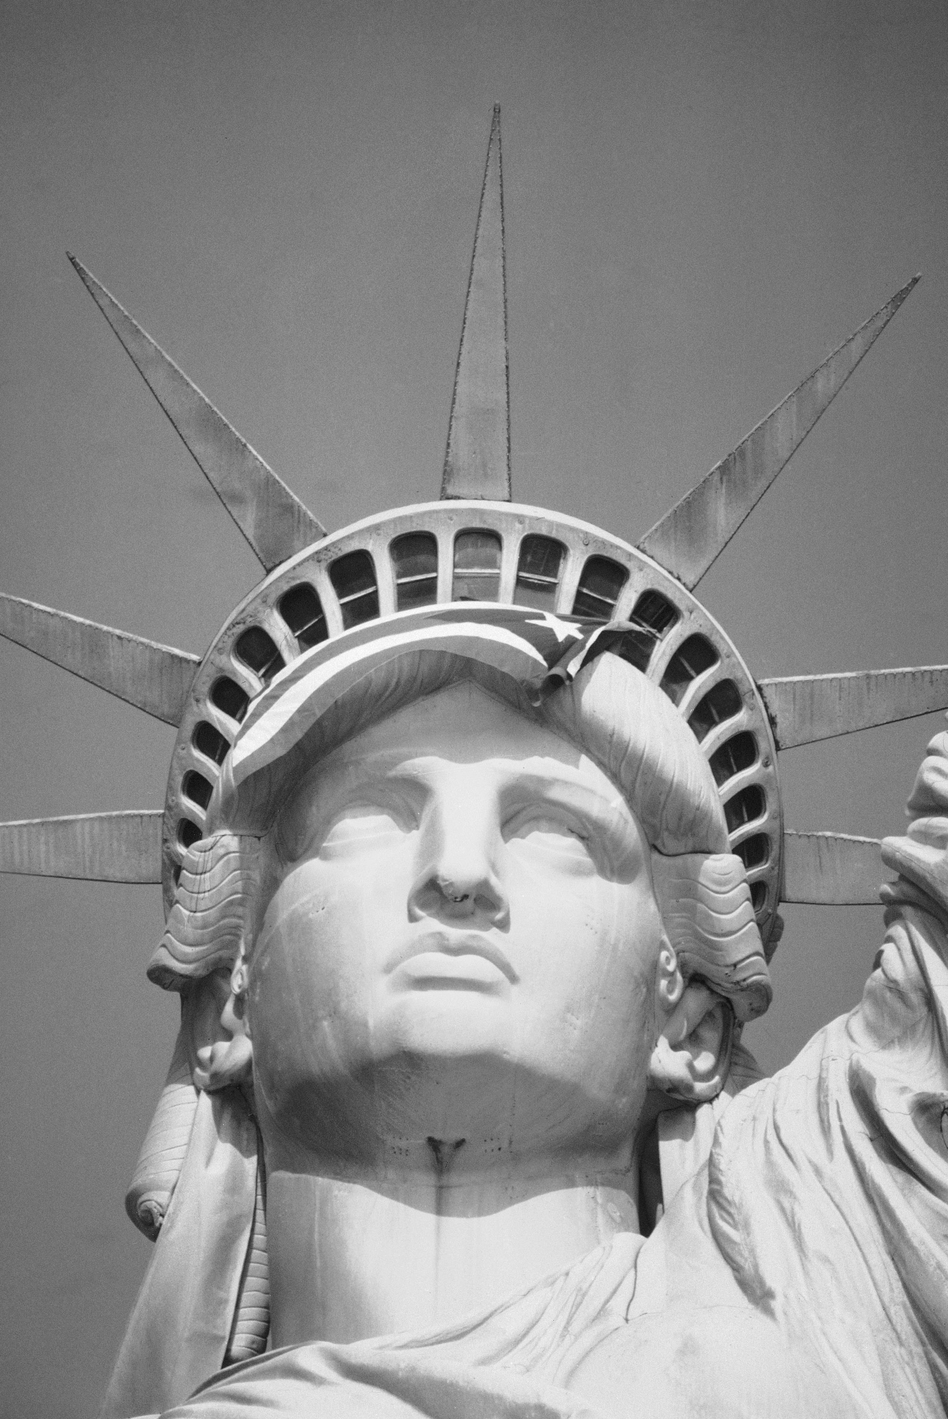 Satatue Of Liberty With Puartarican Flag Tattoo